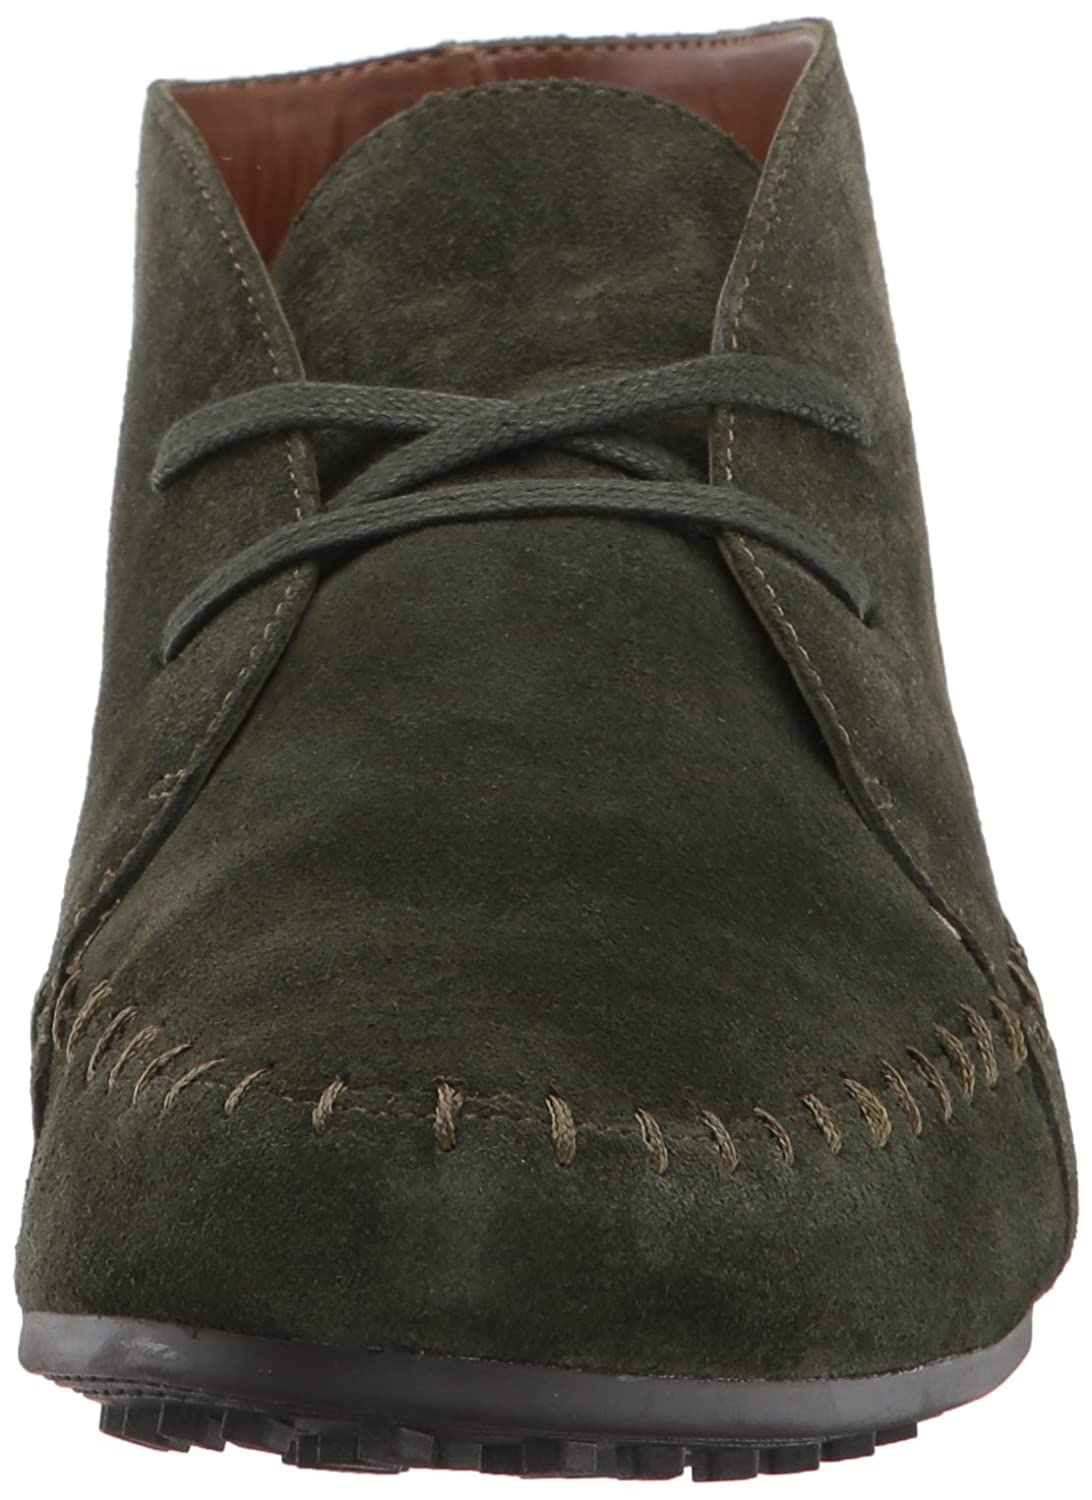 Aerosoles Women's Driving Range Ankle Boot Green B005BJAOI8 8 B(M) US|Dark Green Boot Suede 167173